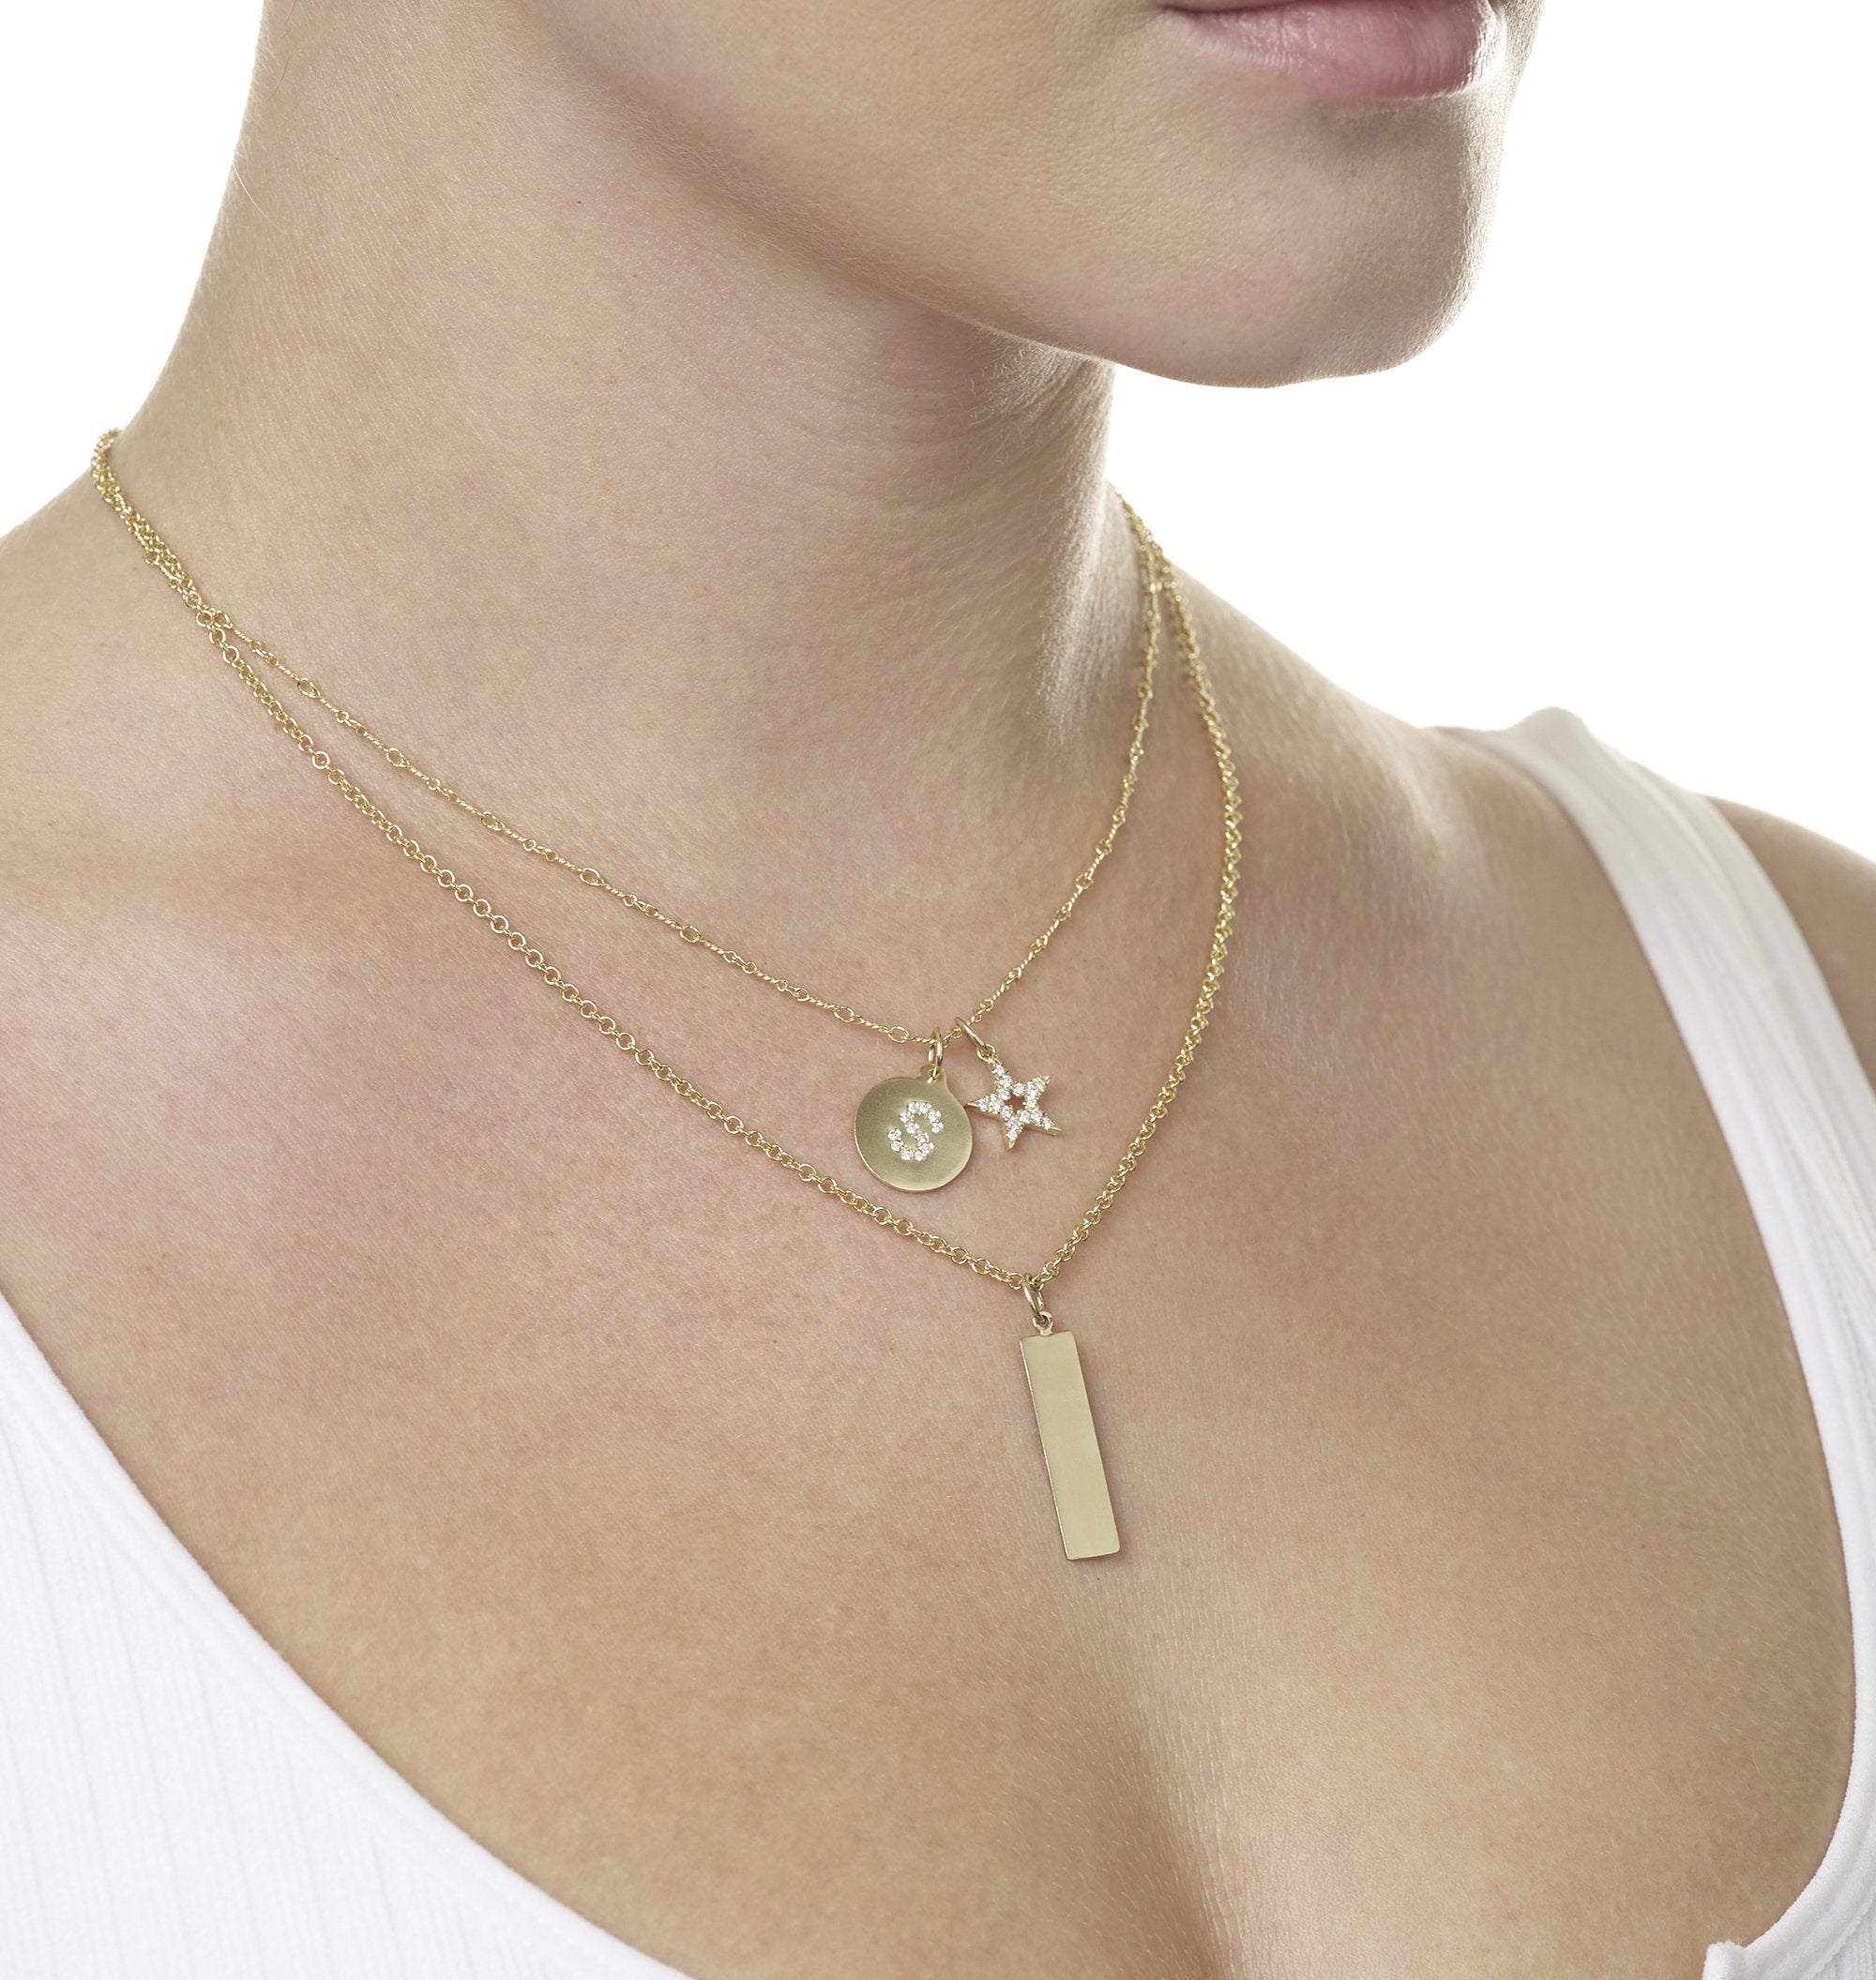 Bar Charm With Name Engraved In Letters For Necklaces And Bracelets 14k Yellow Gold